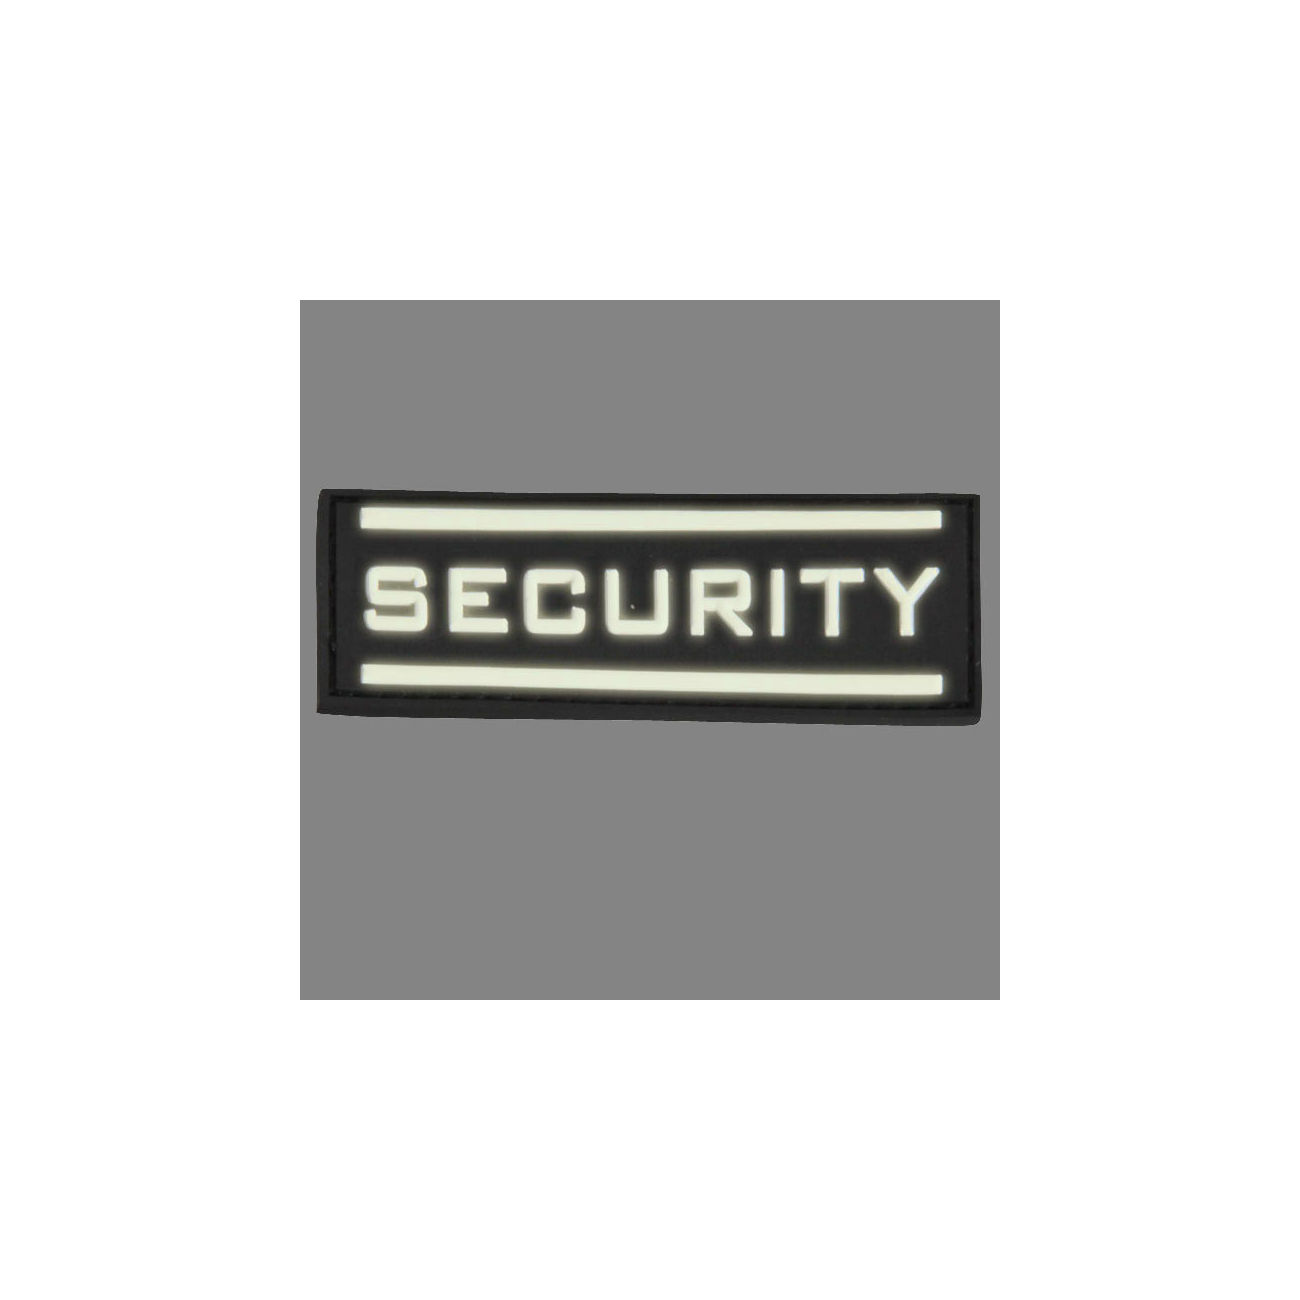 3D Rubber Patch Security gross nachleuchtend 1